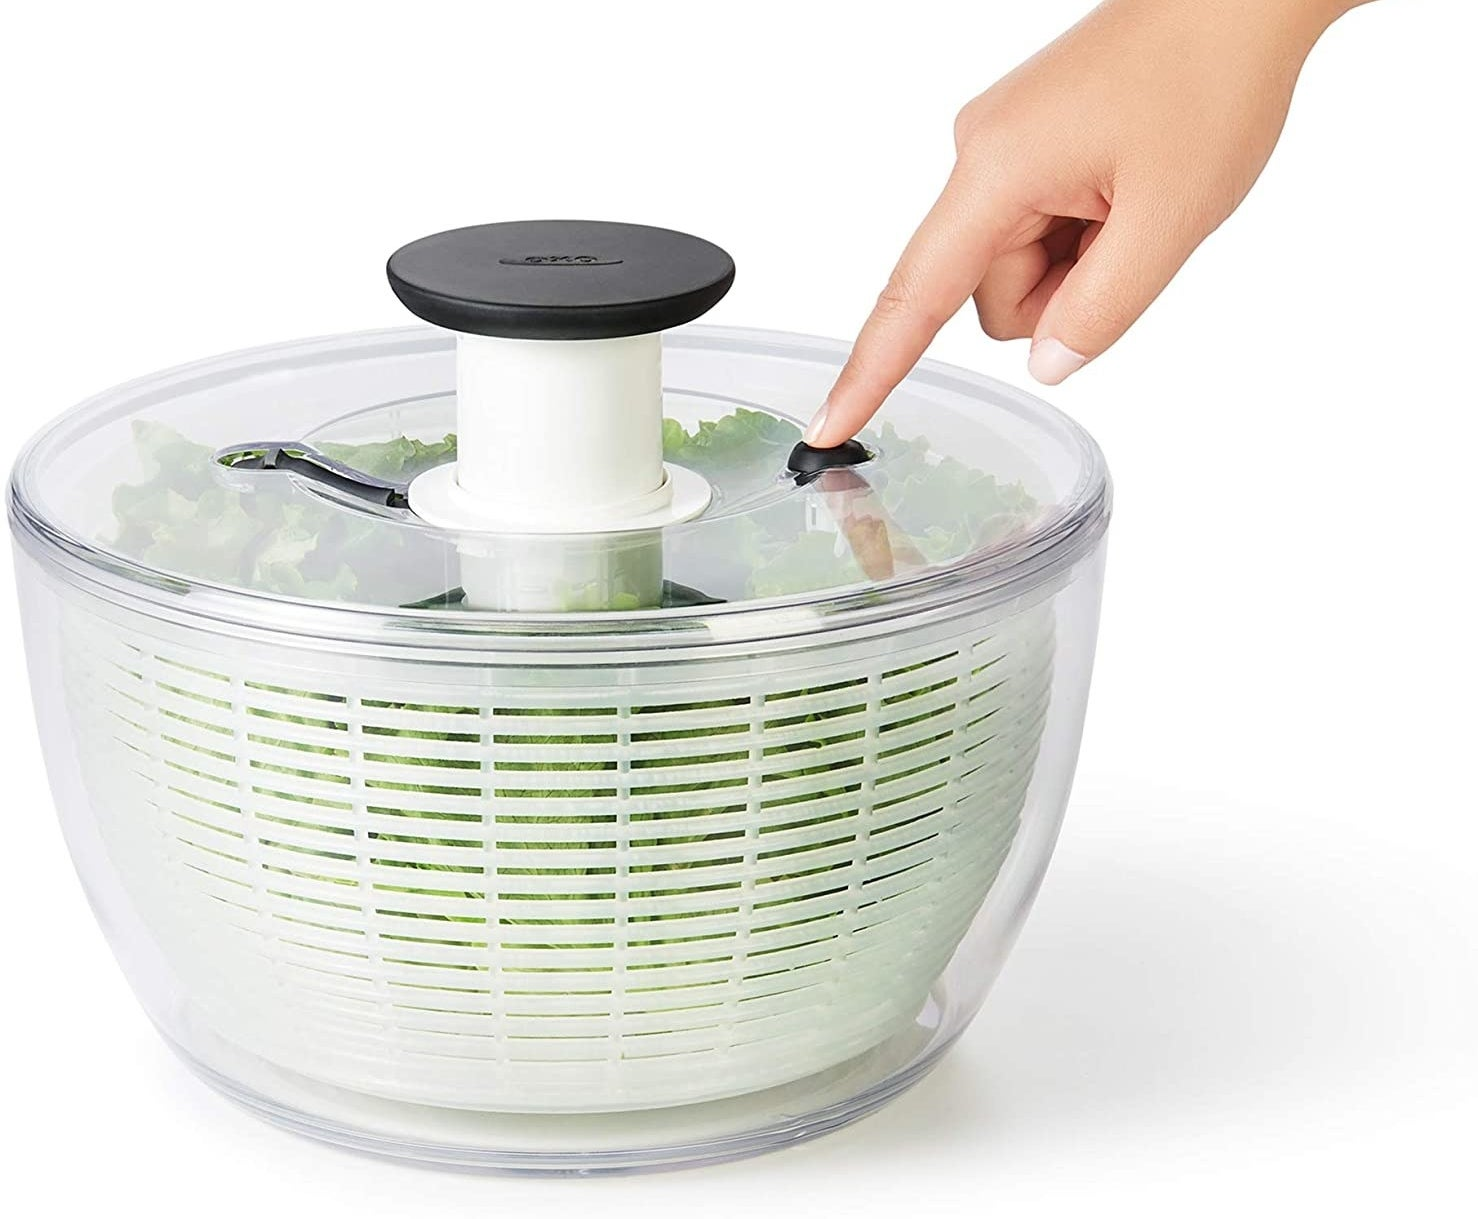 Salad spinner being pressed